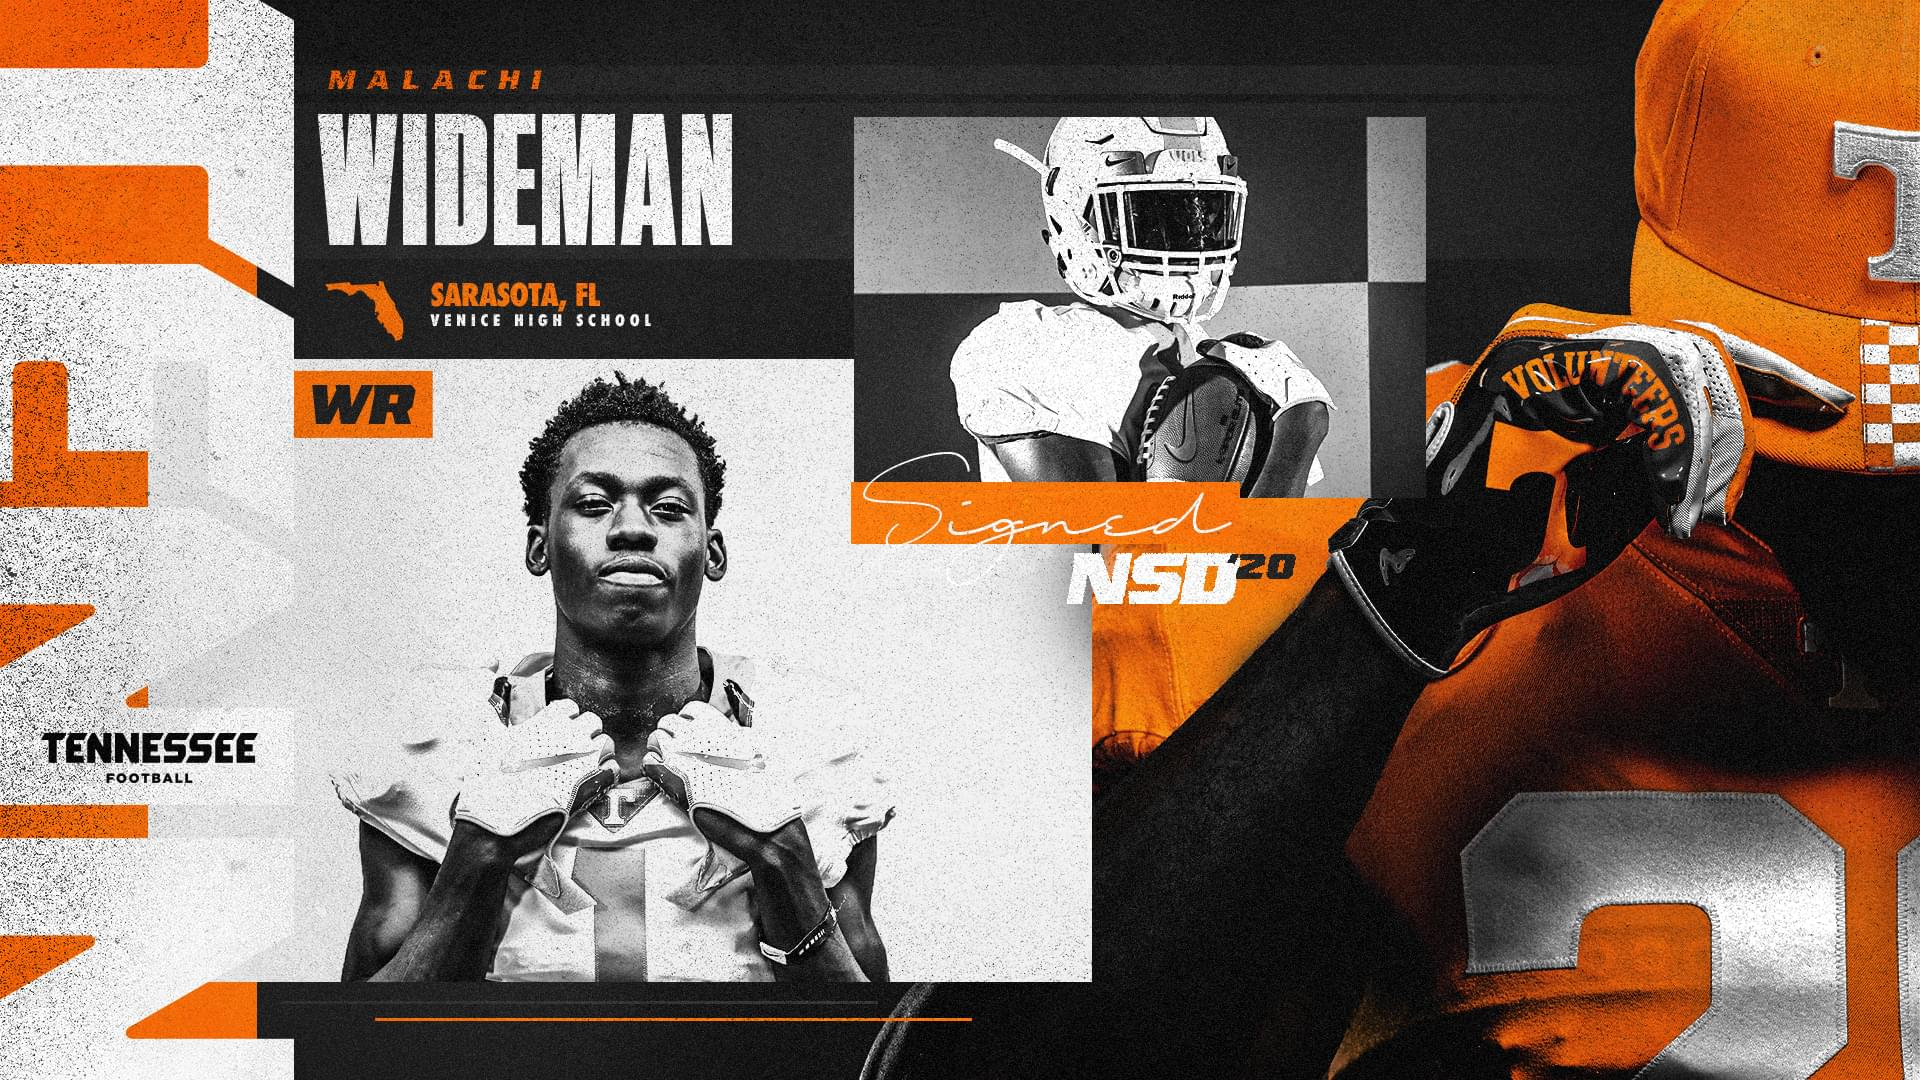 NSD_Malachi_Wideman